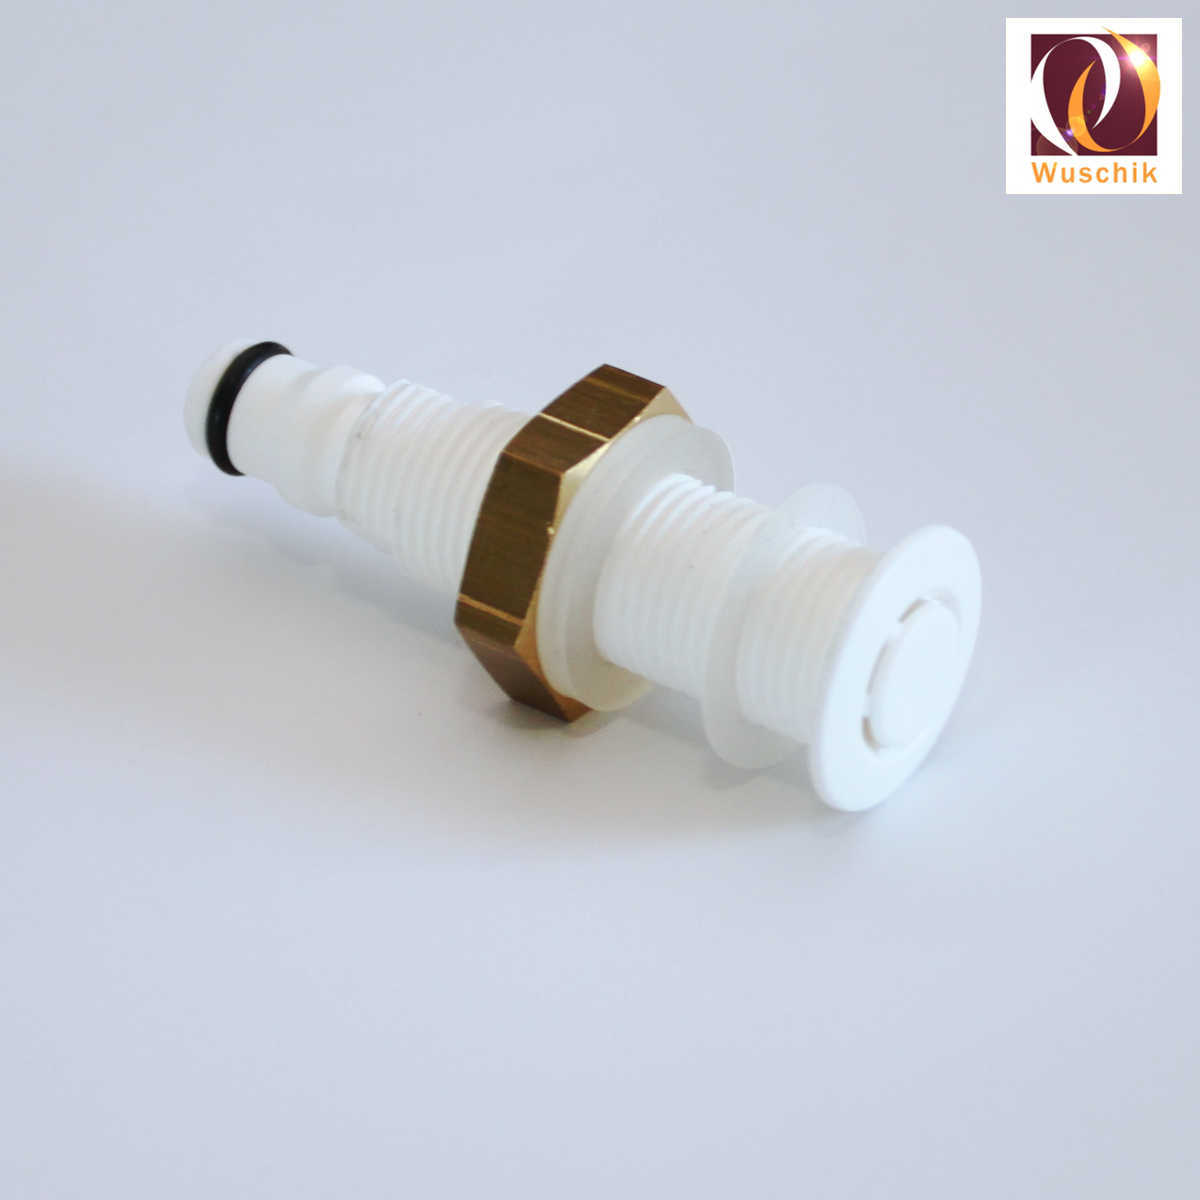 Air spa jet 14mm non return valve, brass nut with check-valve